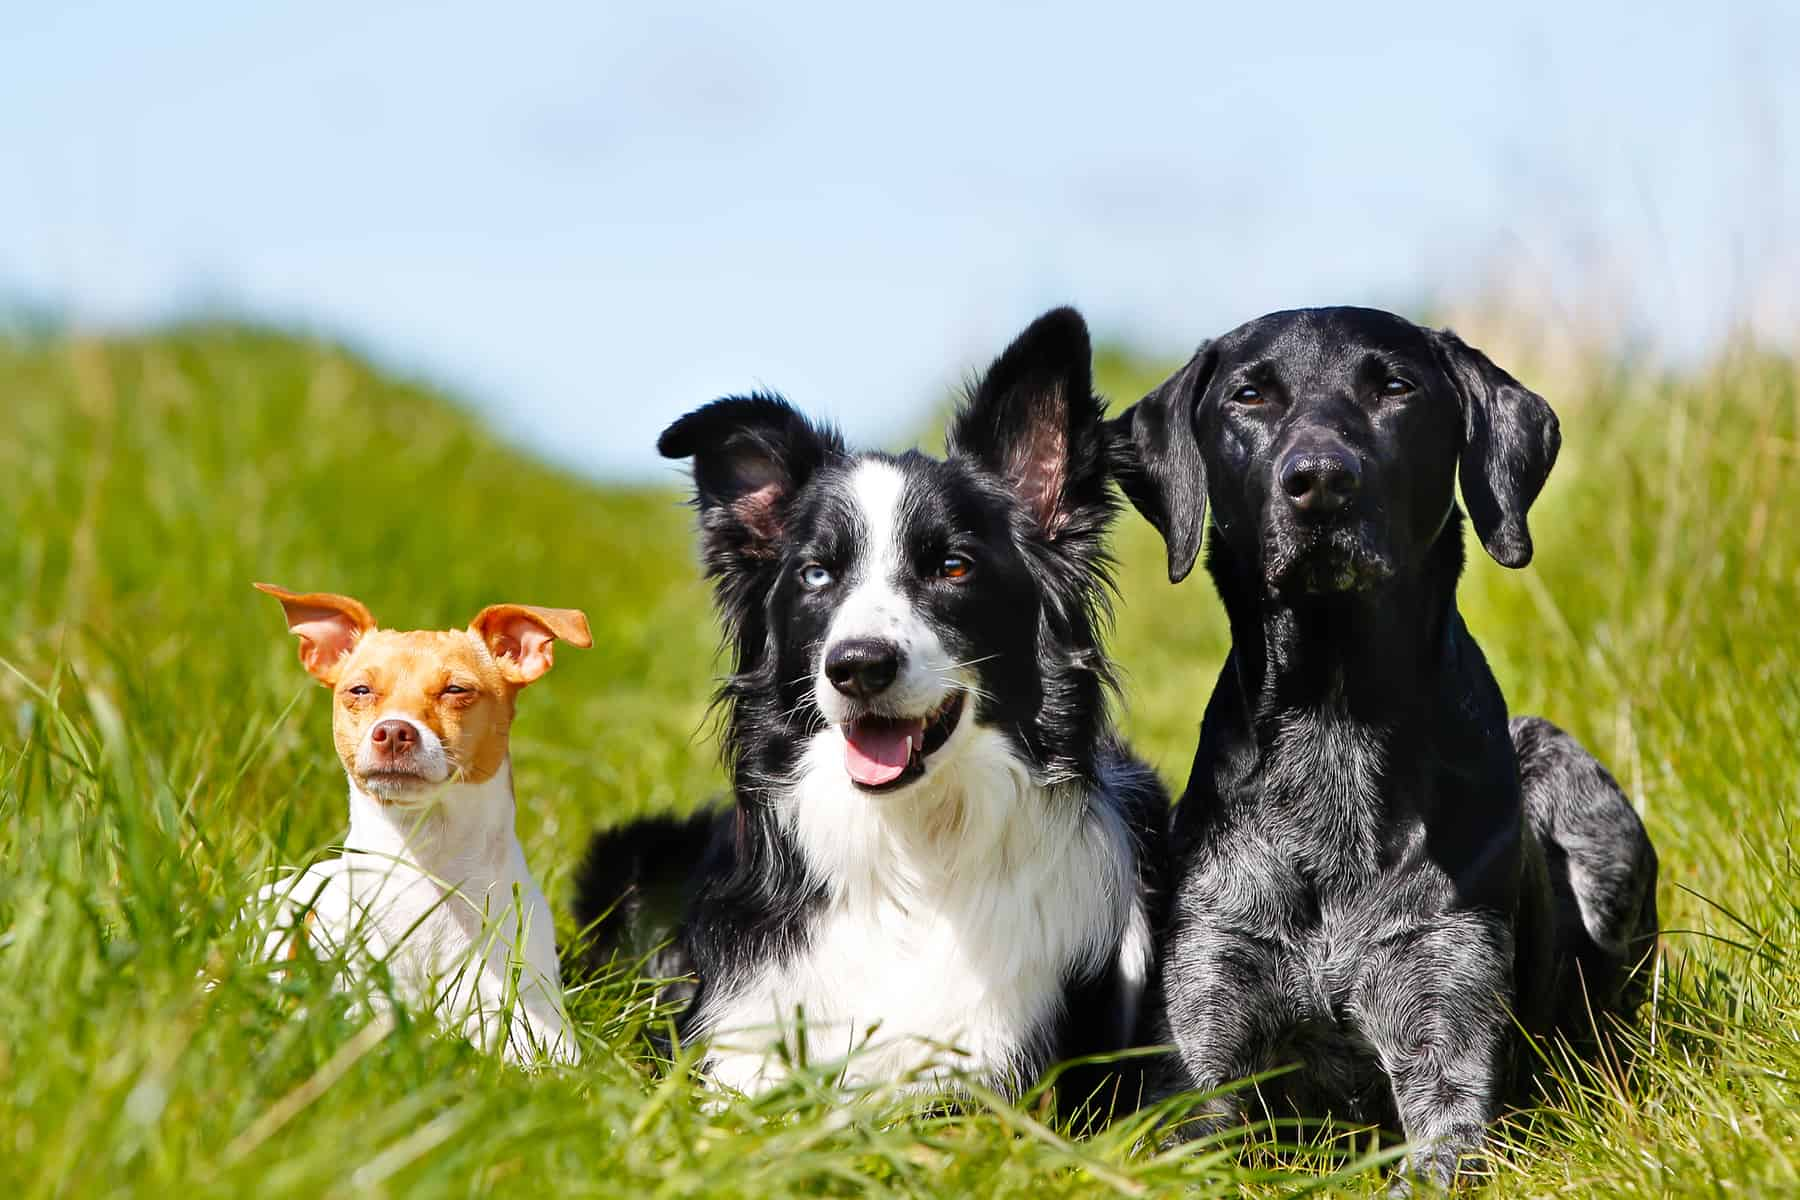 A Border Collie and 2 other dogs, outdoors on a sunny summer day.